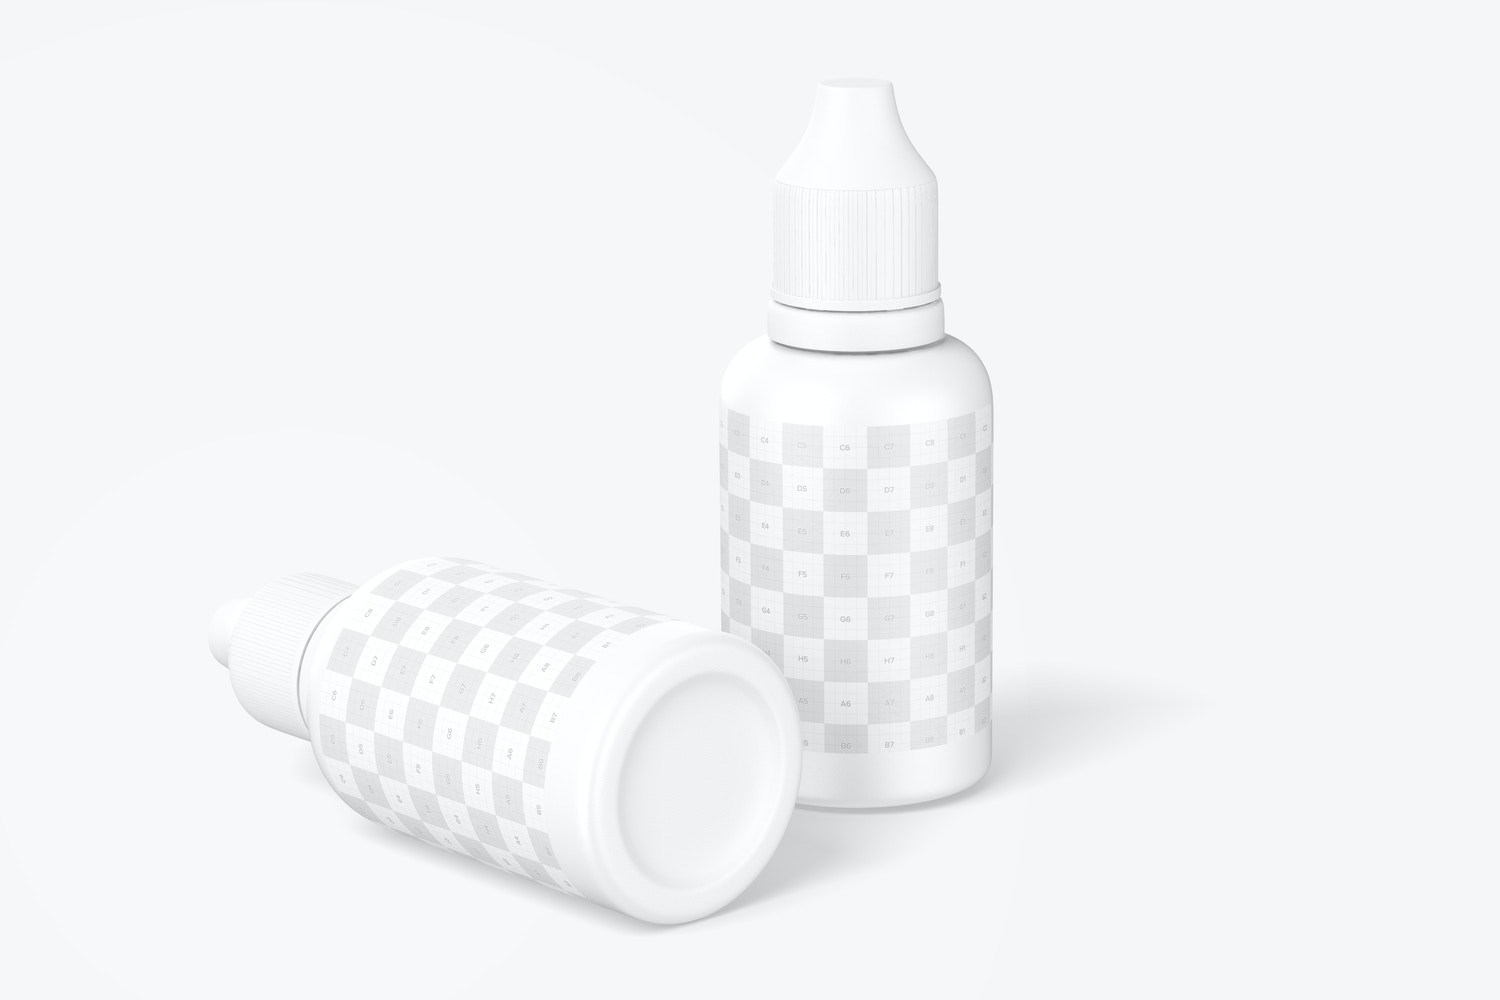 0.5 oz Micro Pigment Tattoo Bottles Mockup, Leaned and Dropped